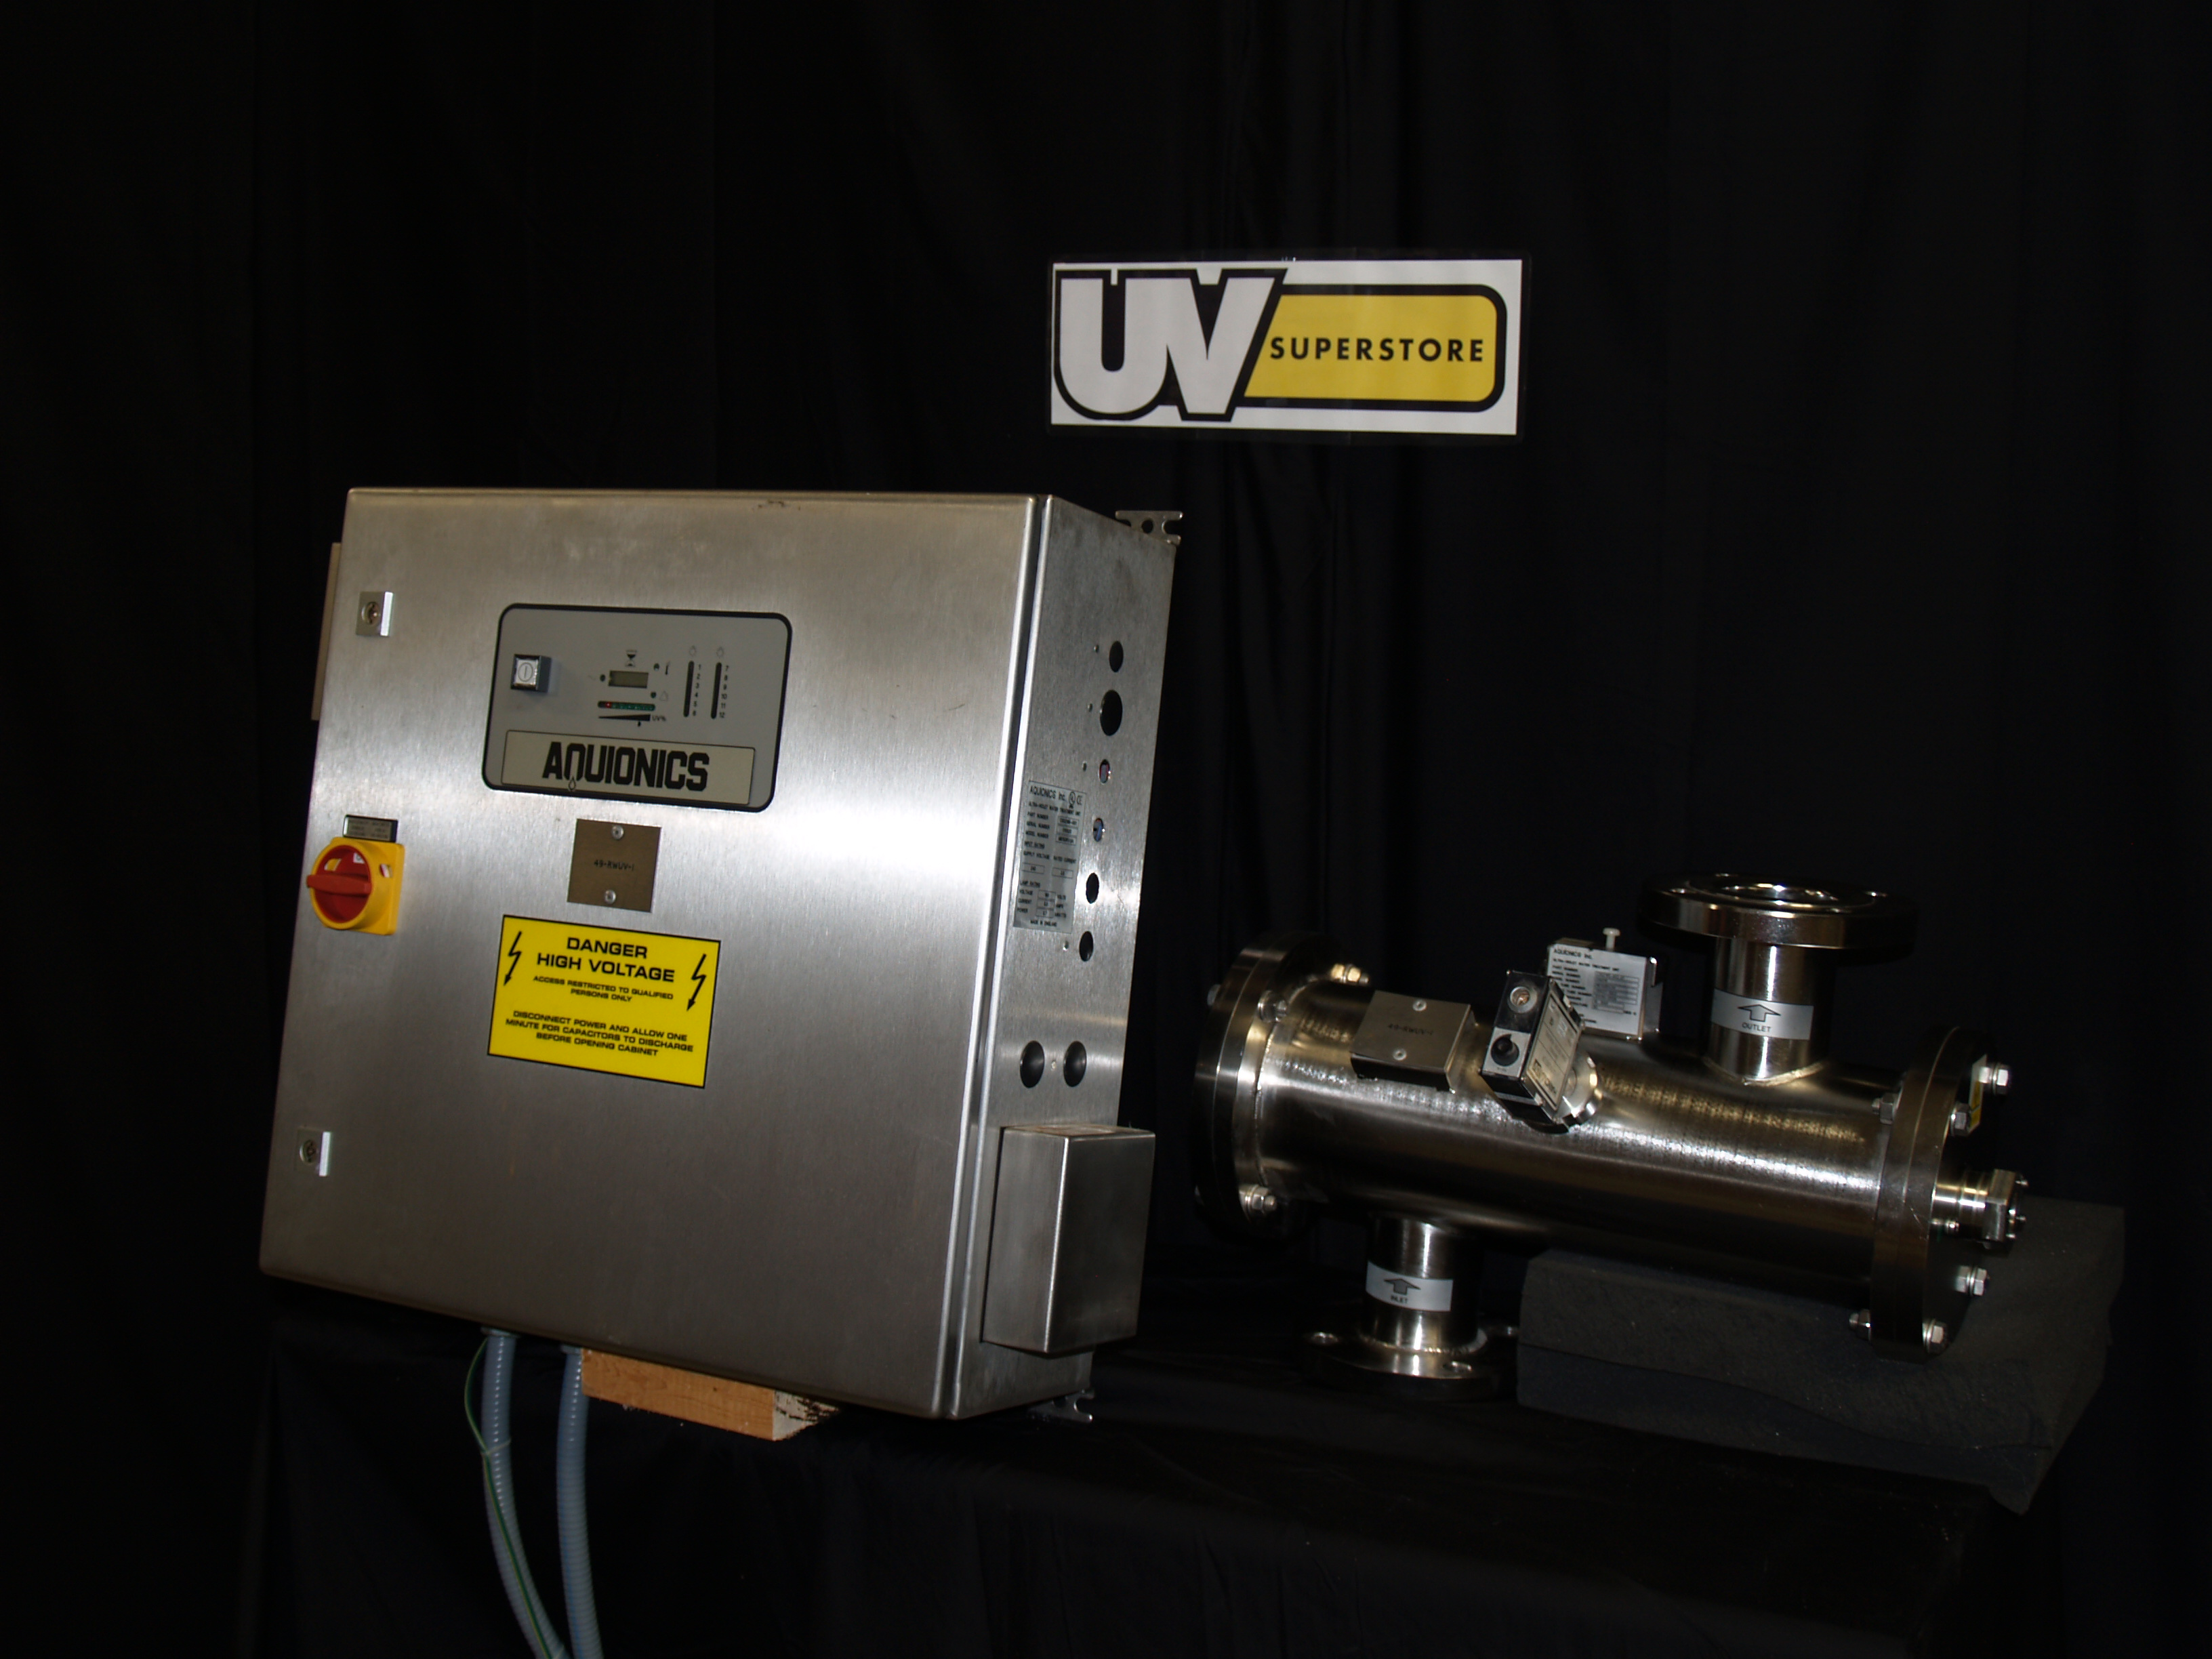 Mb150r1 3a Used Uv Water Treatment System Uv Superstore